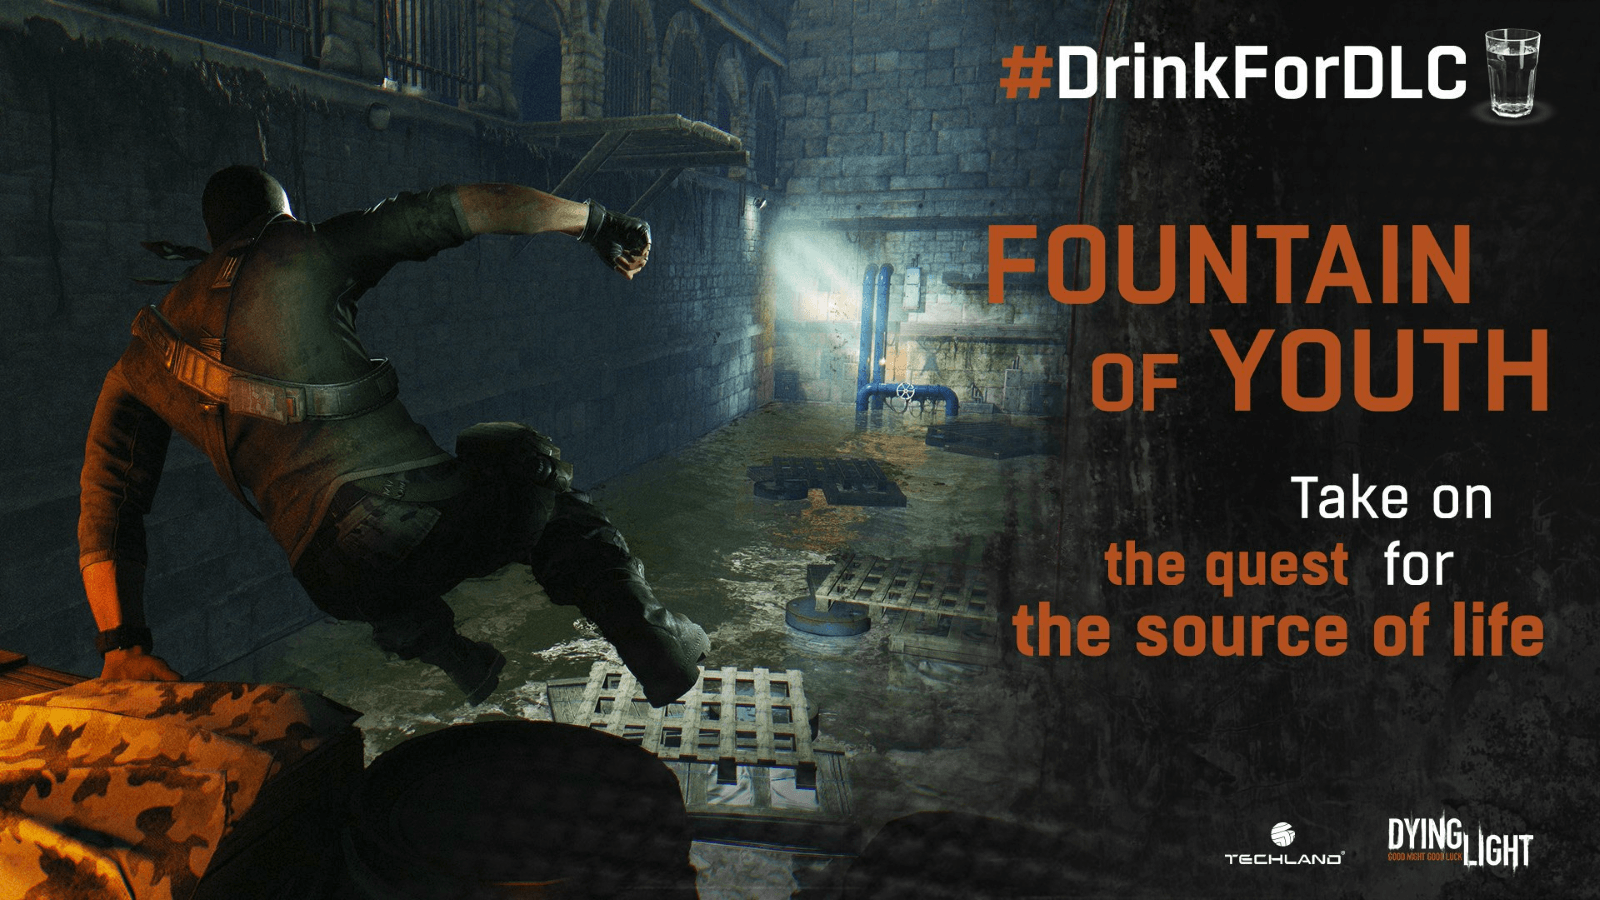 Free Dying Light #DrinkForDLC Content Revealed news header